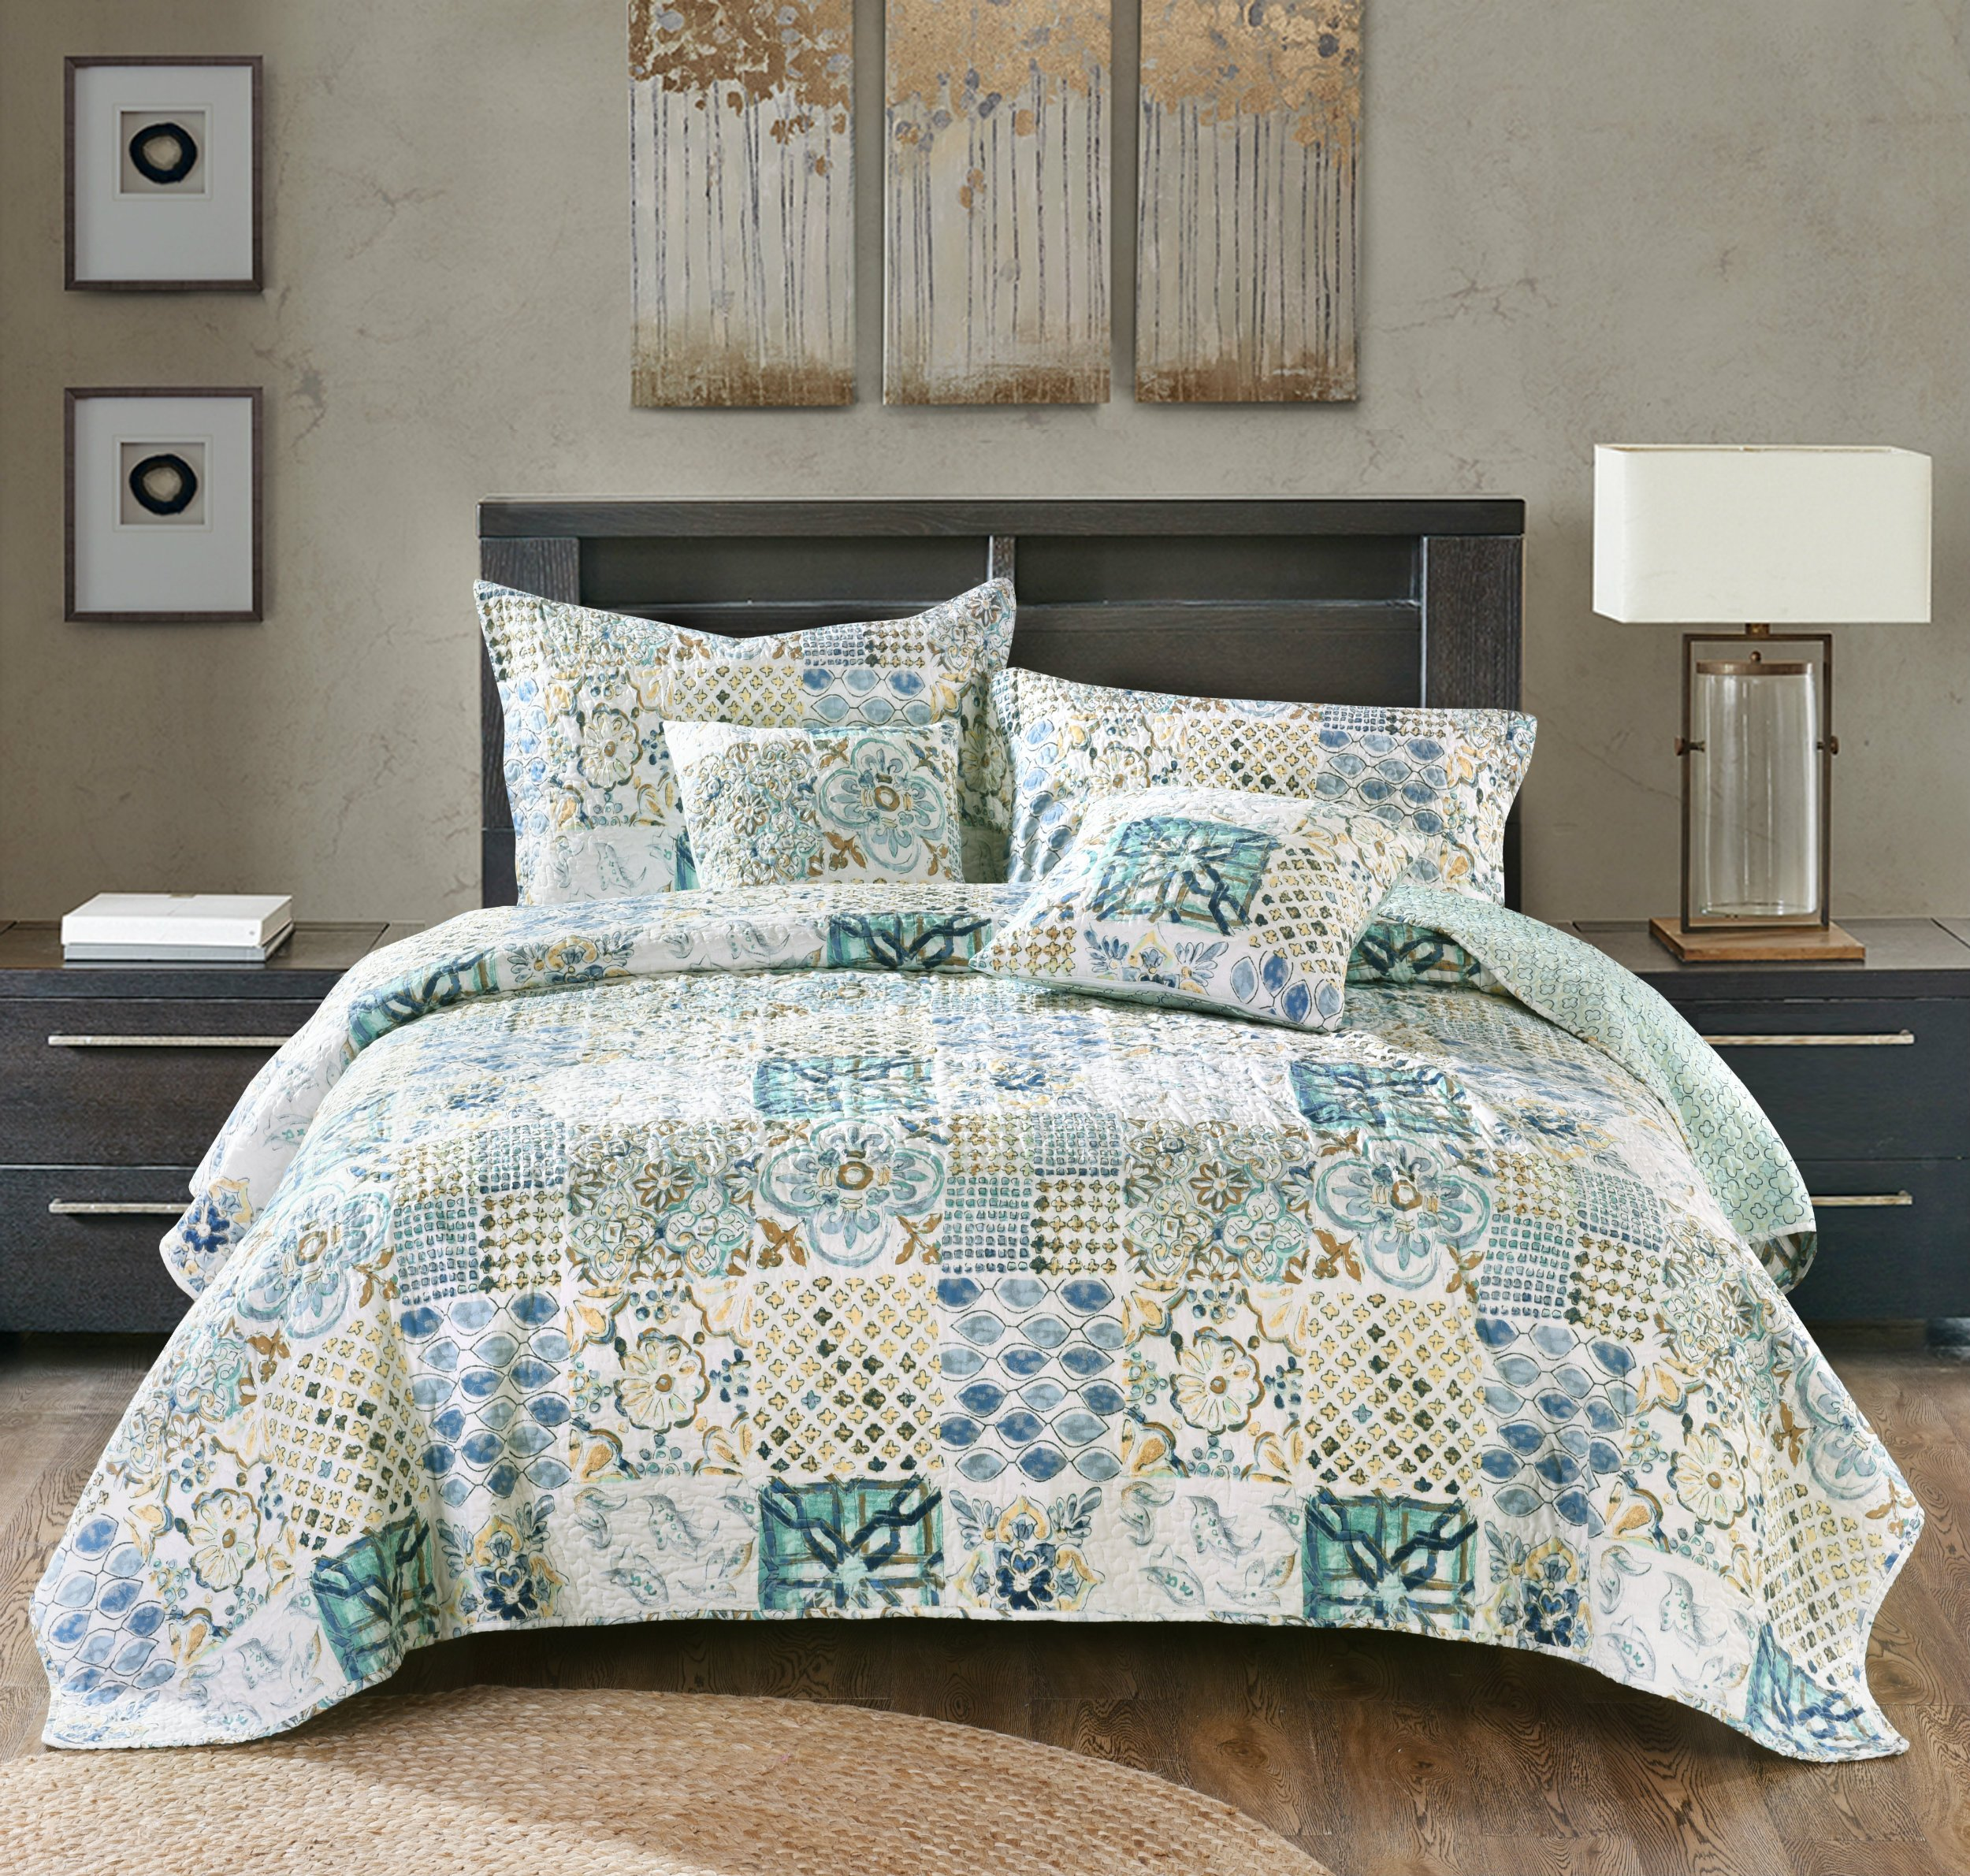 Tache Blue Floral Patchwork Bedspread - Watercolor Spring Time - Quilted Reversible Coverlet Bedding Set - Bright Vibrant Multi Colorful Blue White Green Floral Print - Queen - 3-Pieces